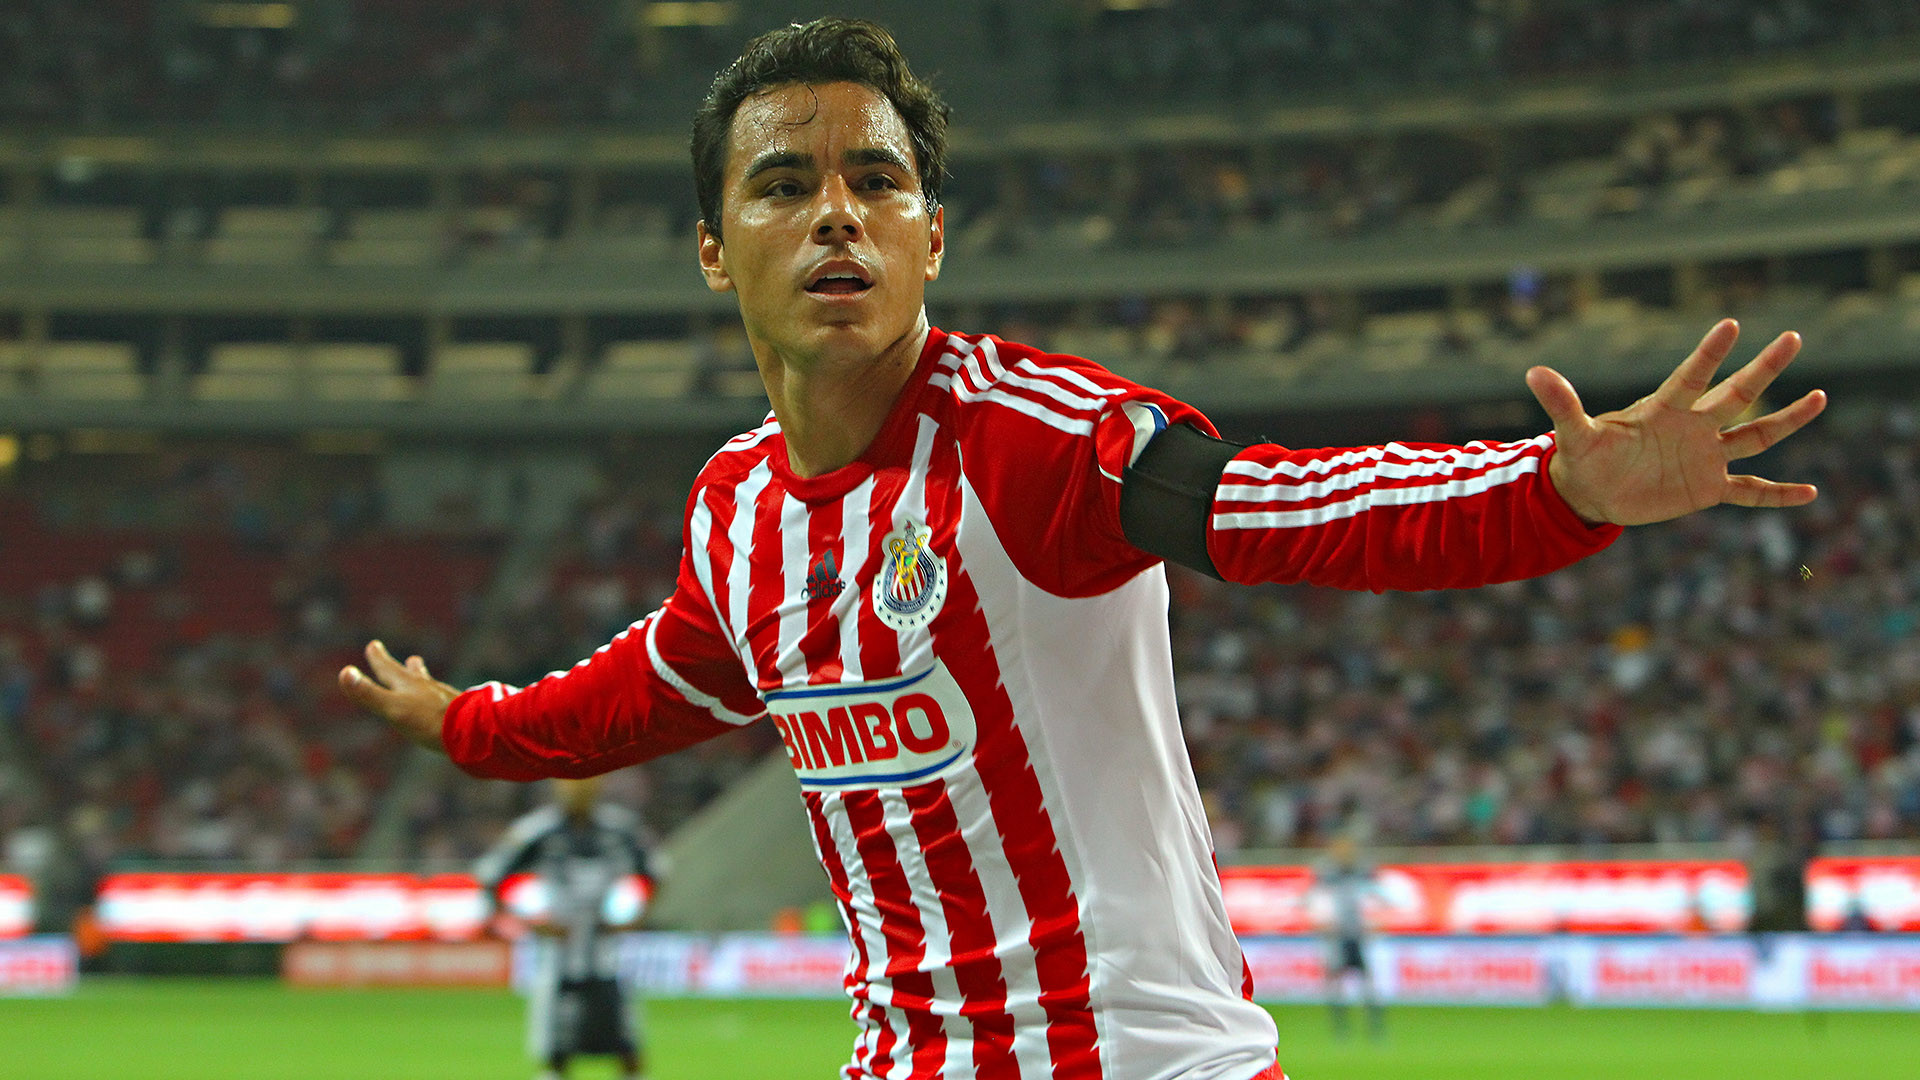 Omar Bravo was back amongst the goals for Chivas this past Sunday